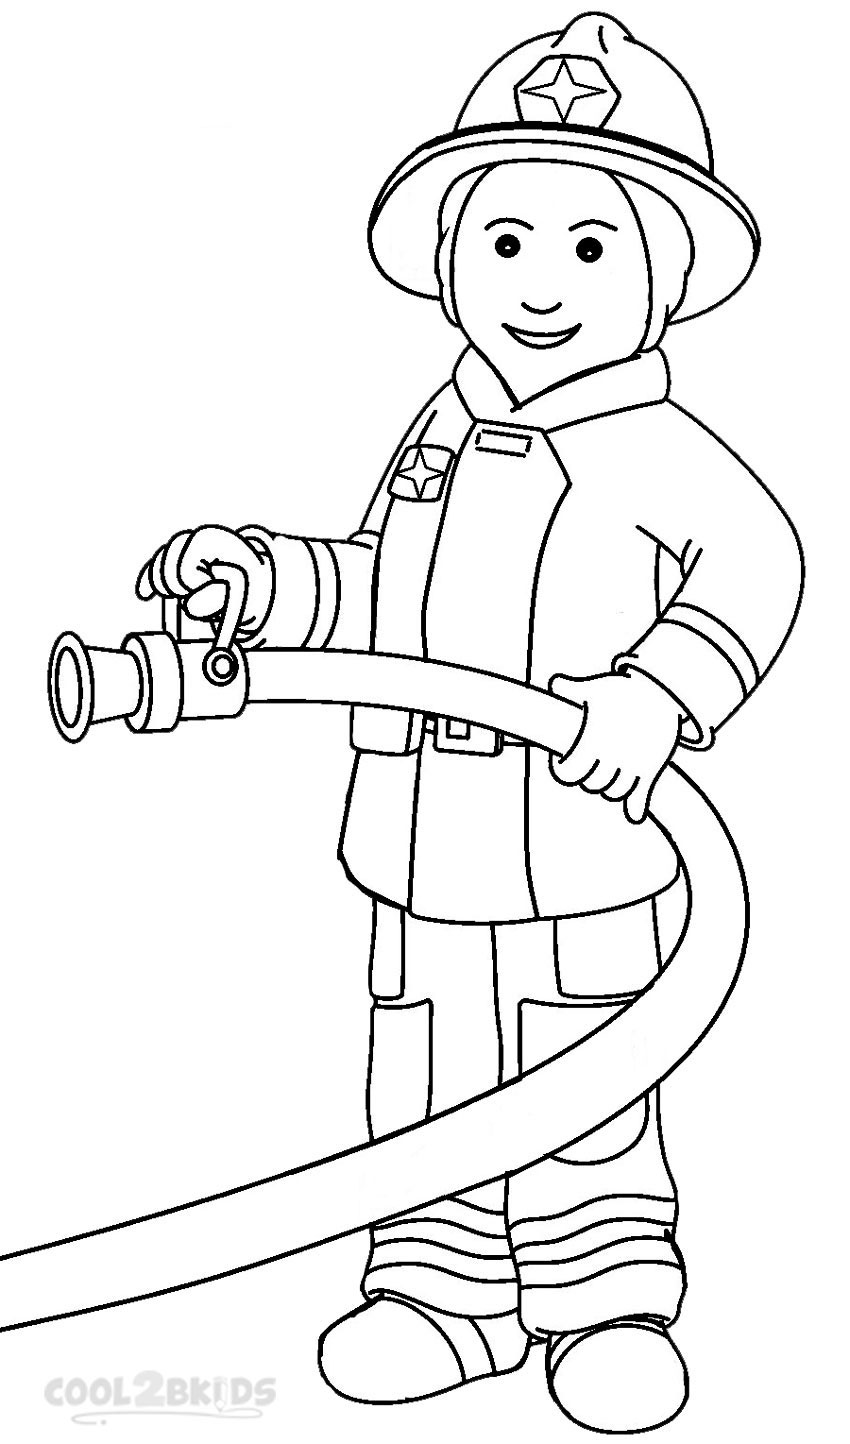 printable community coloring pages firefighter coloring pages to download and print for free printable coloring pages community